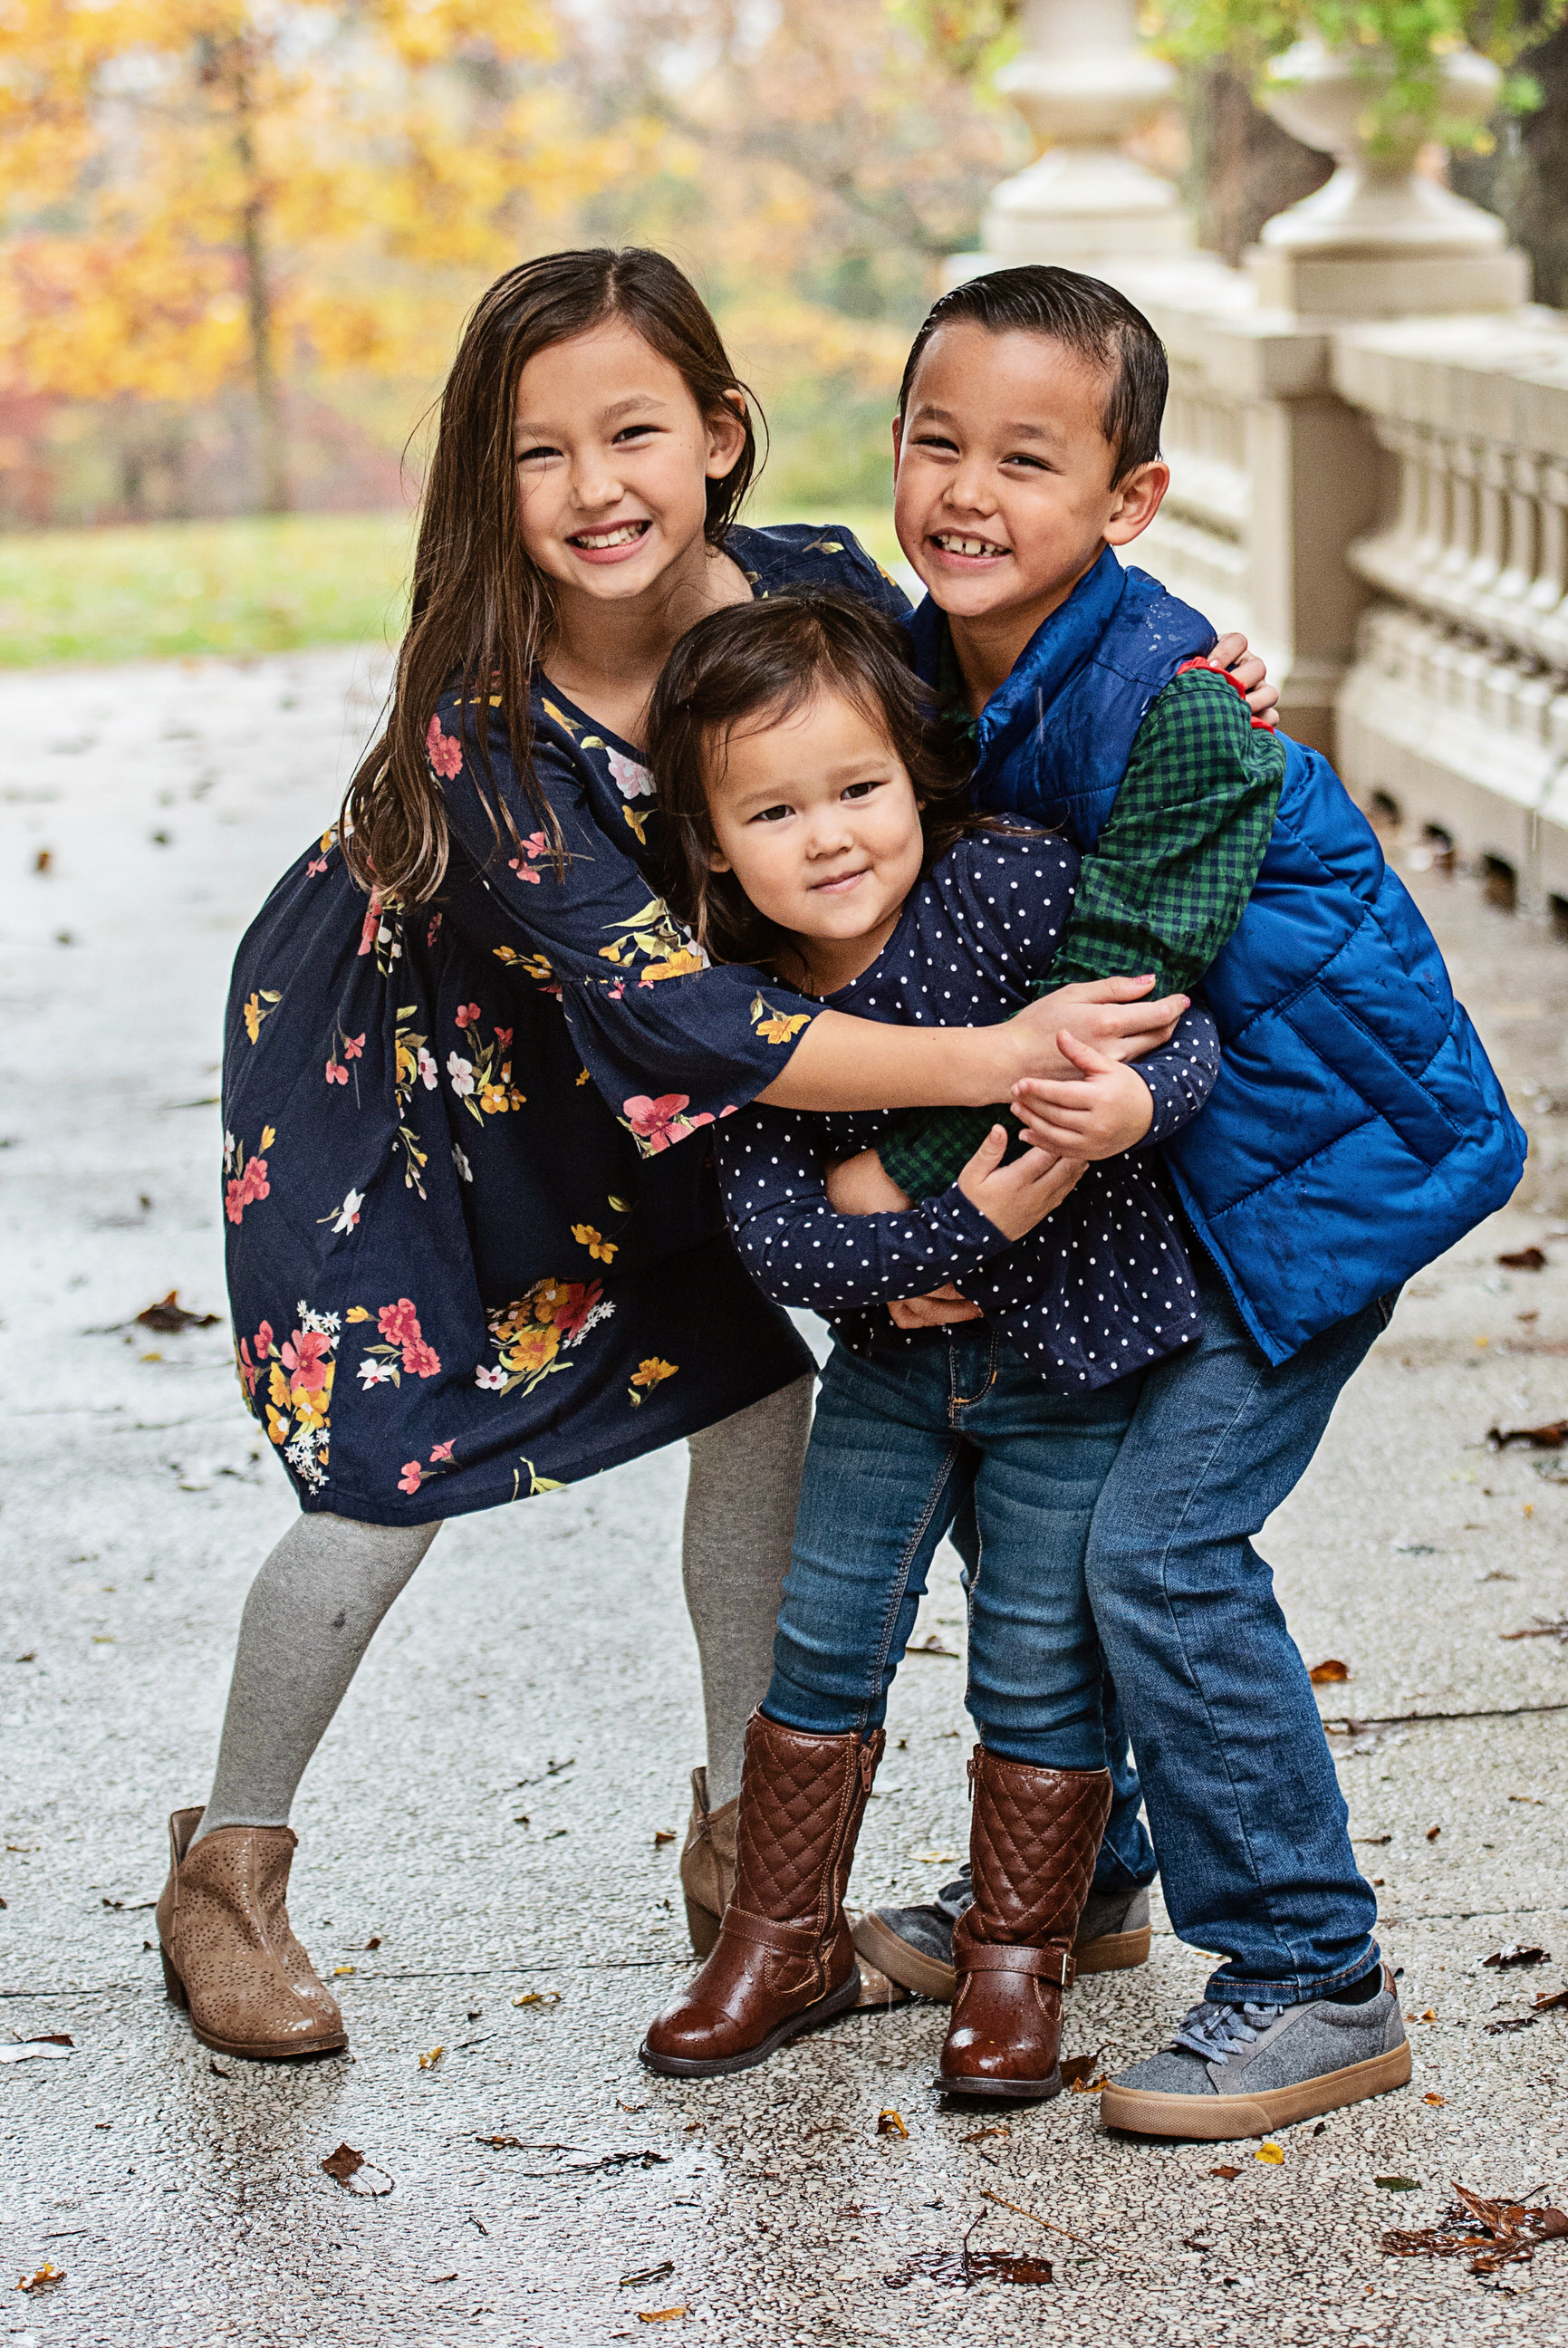 MarylandFamilyPhotography-LienFamily2018-8.jpg